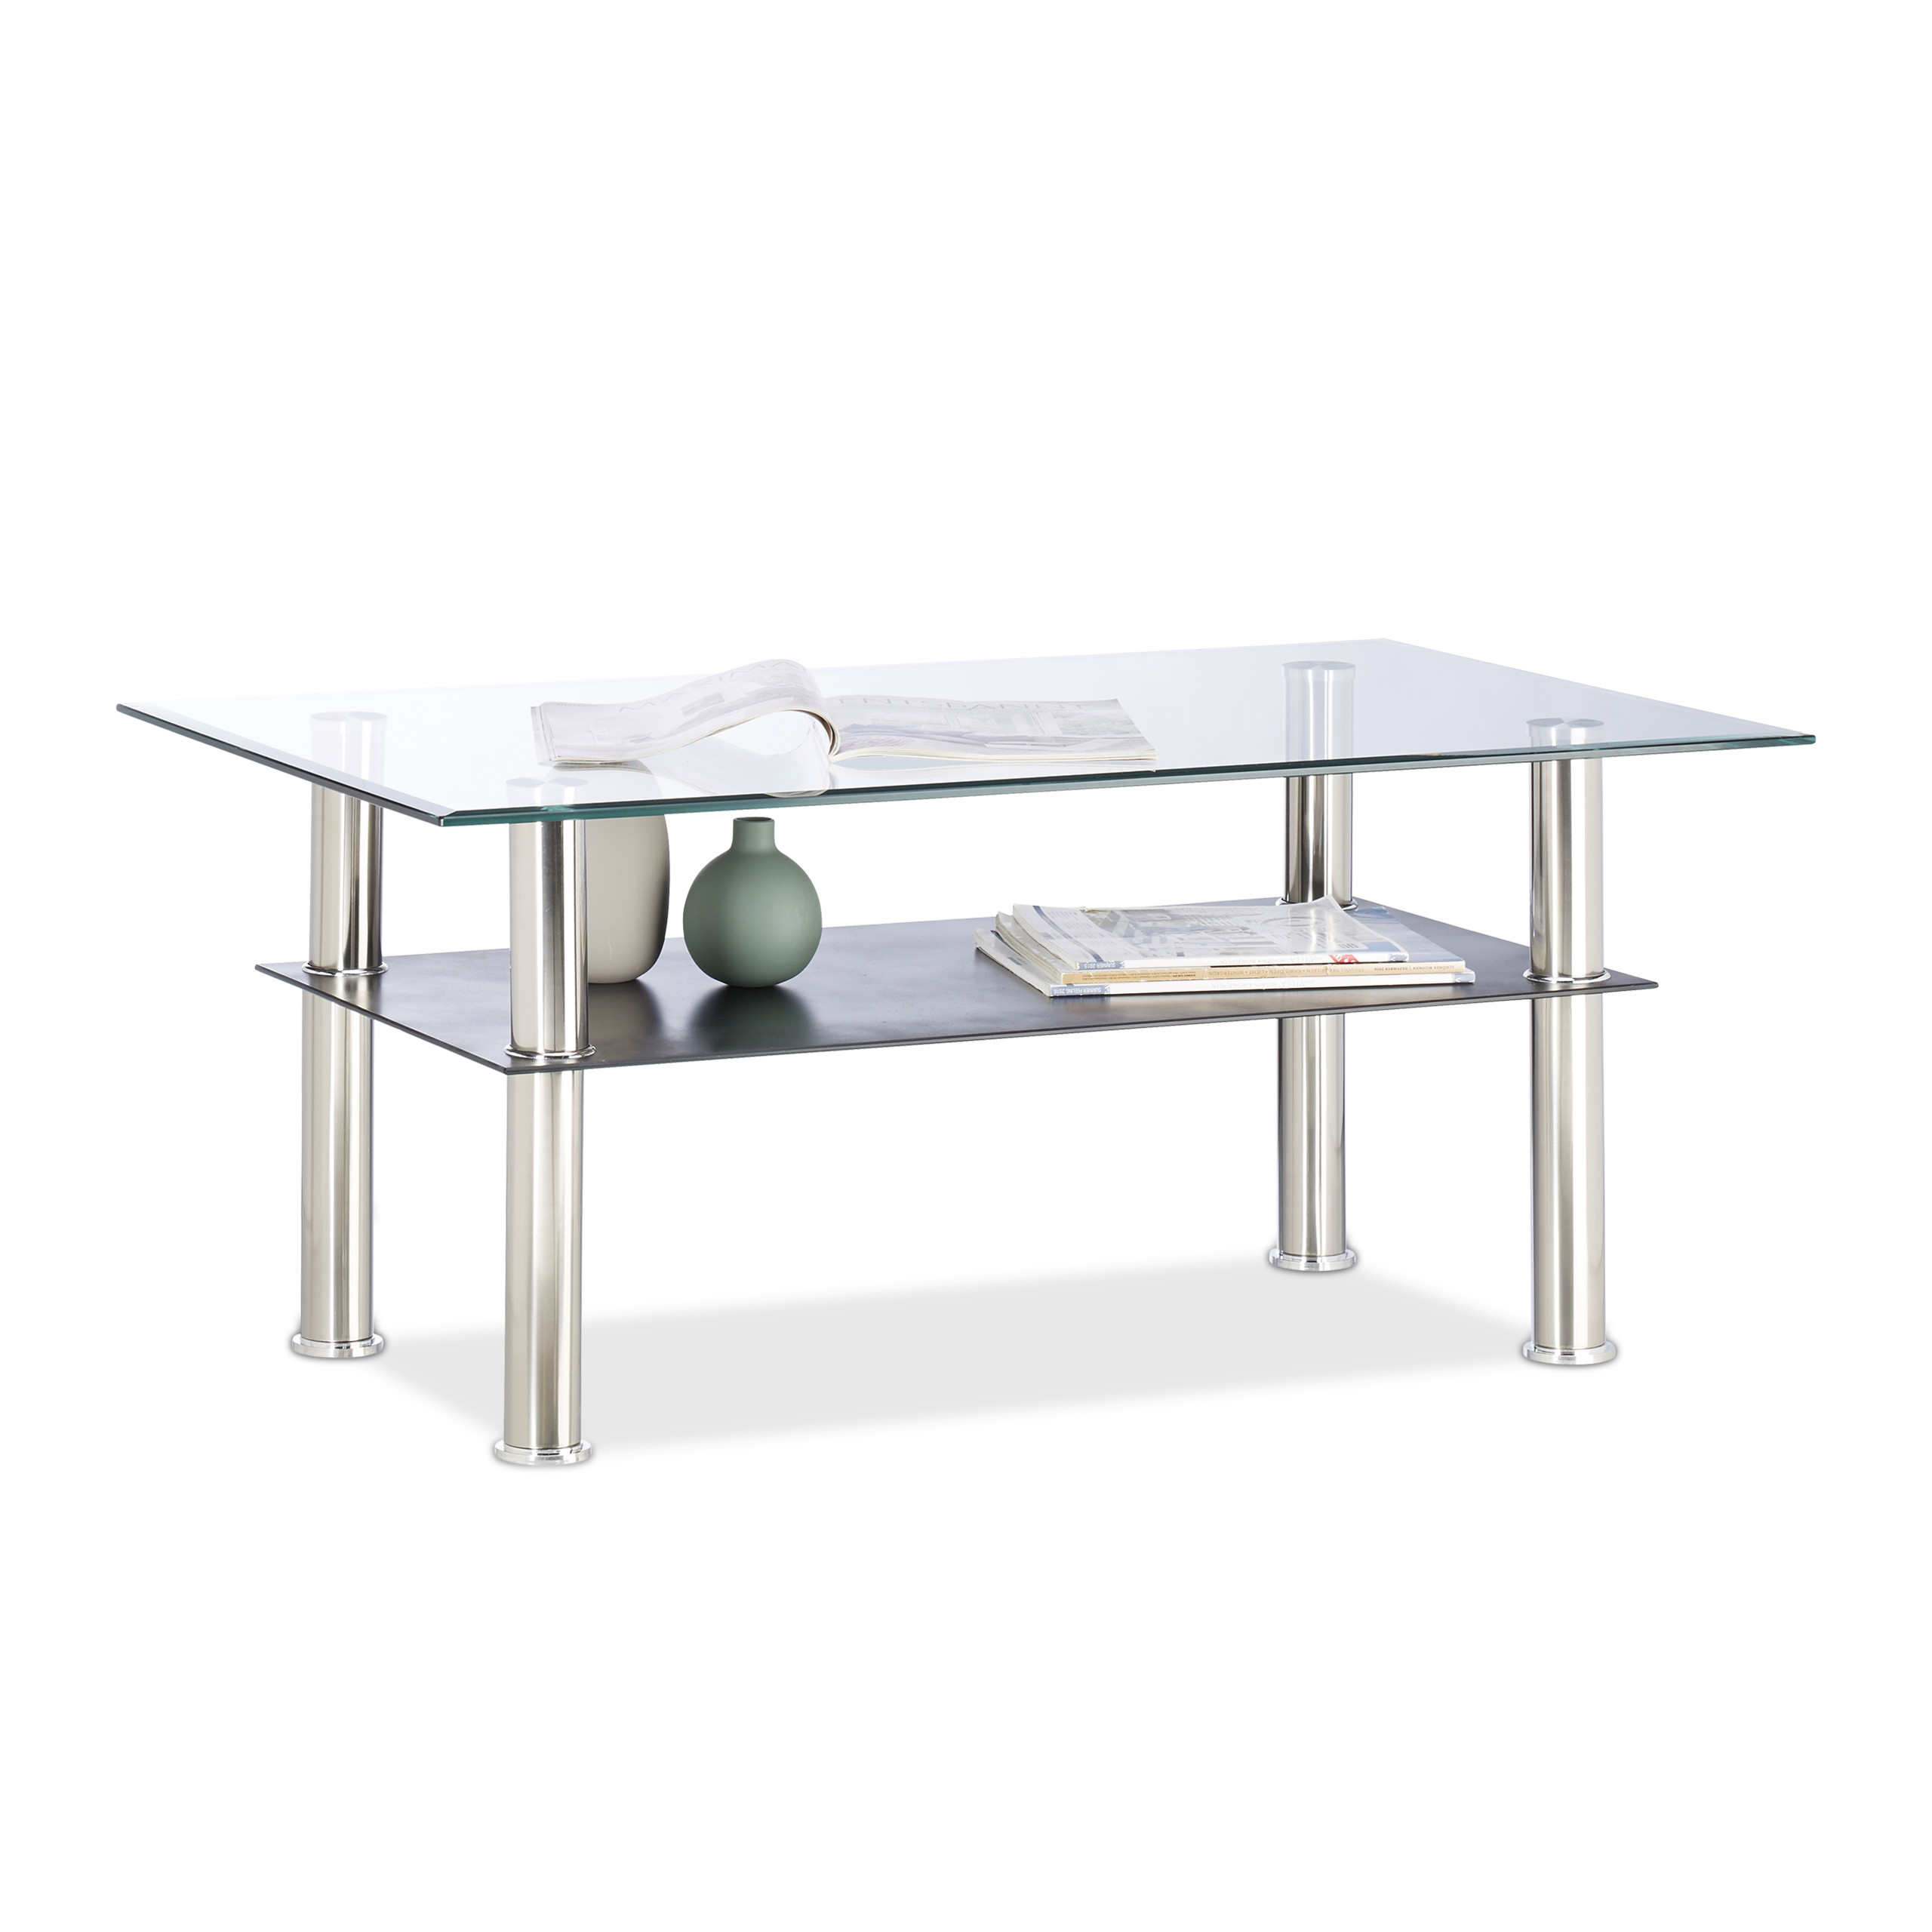 Table Appoint Verre Détails Sur Table Basse Verre Support Table De Salon Table D Appoint Vitrée 2 Niveaux Café